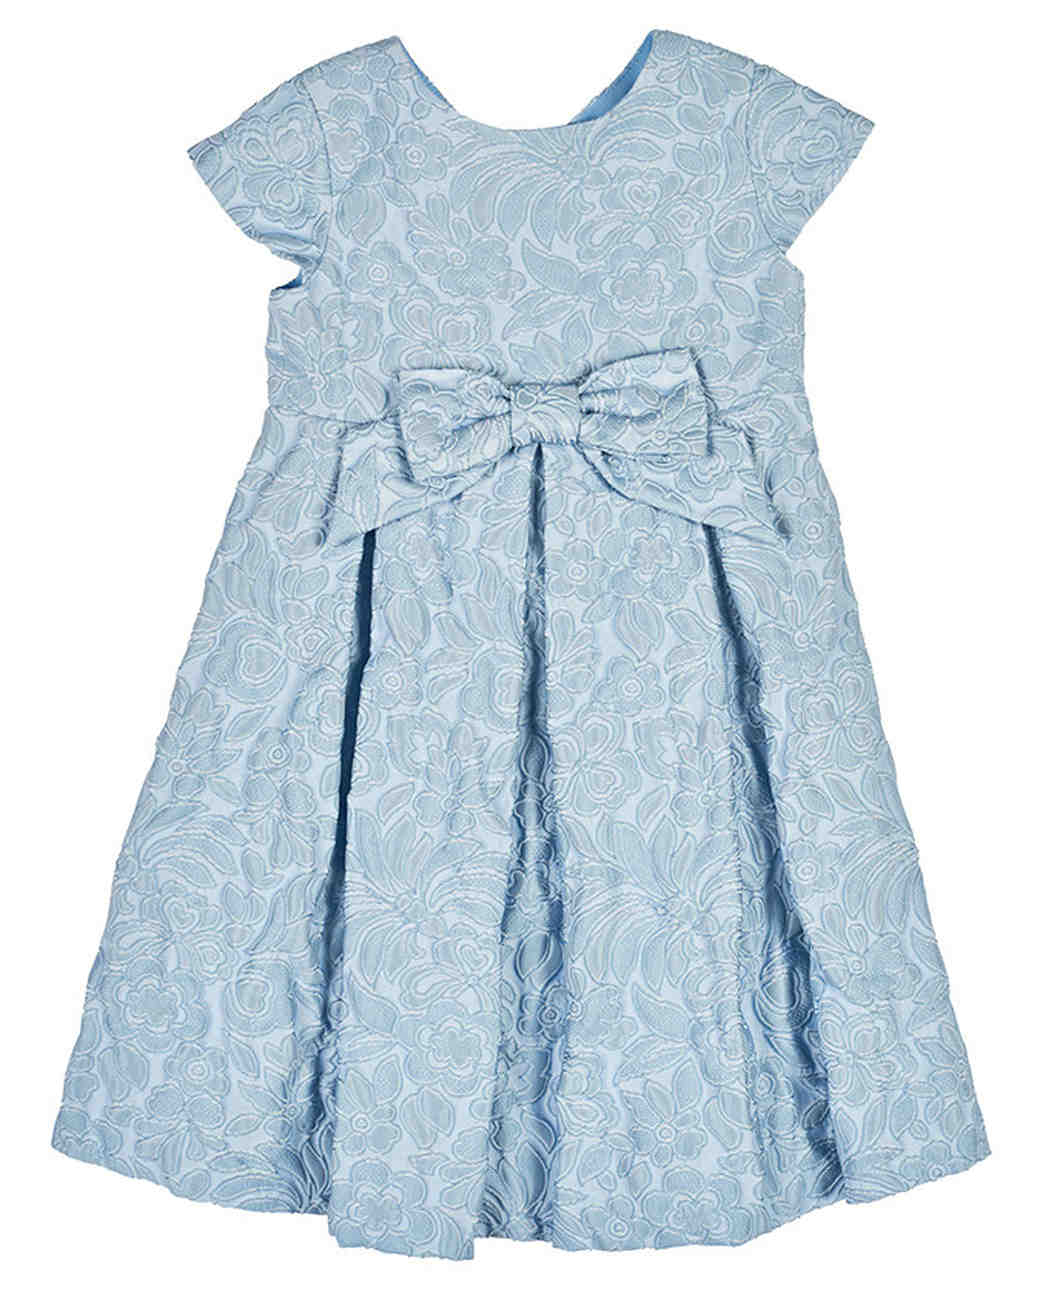 Florence Eiseman Blue Floral Jacquard Dress